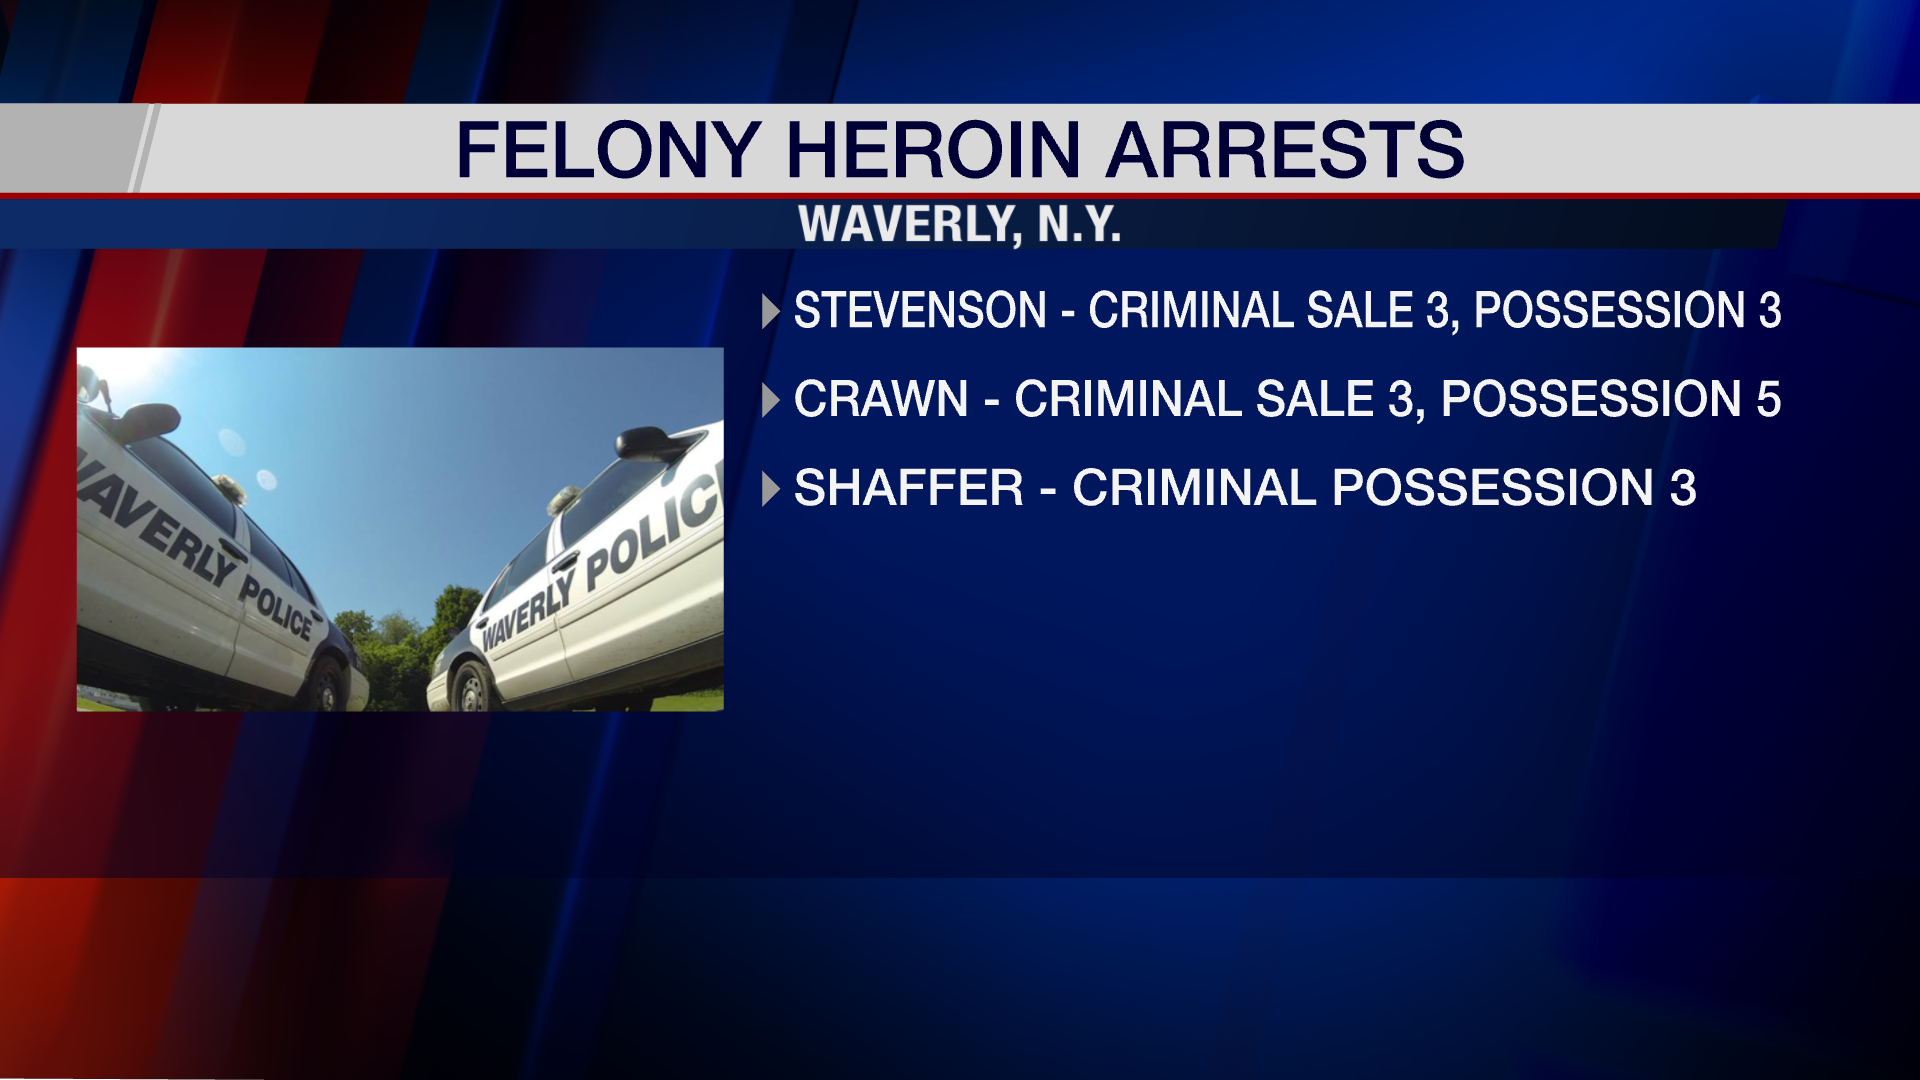 3 arrested following narcotics investigation in Waverly - WENY News